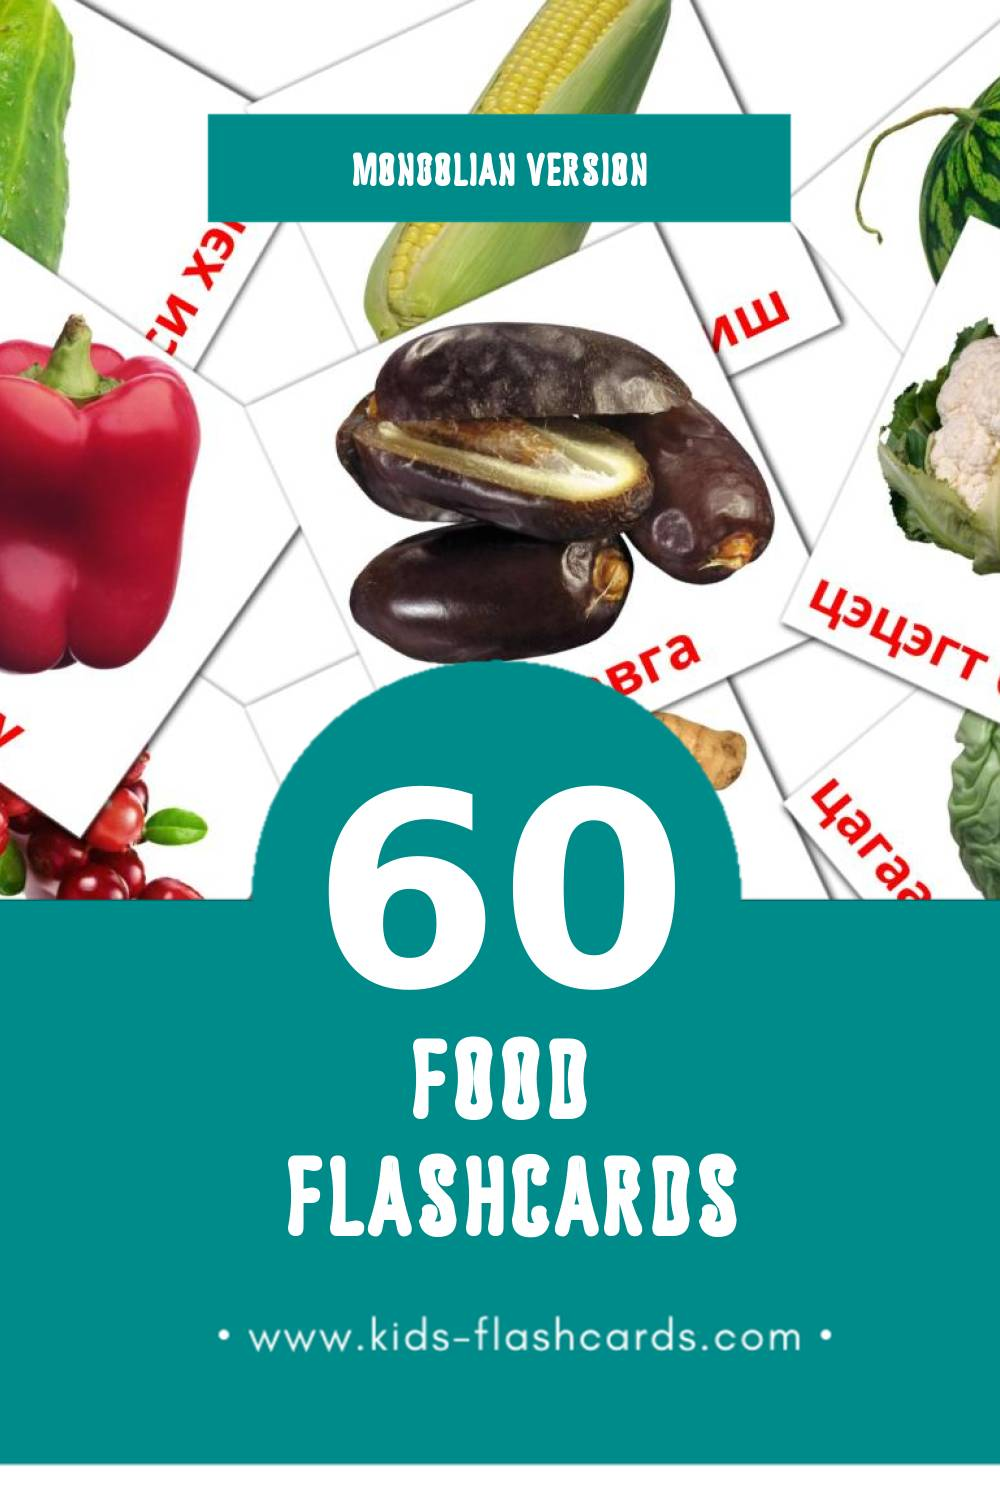 Visual Хүнс Flashcards for Toddlers (60 cards in Mongolian)